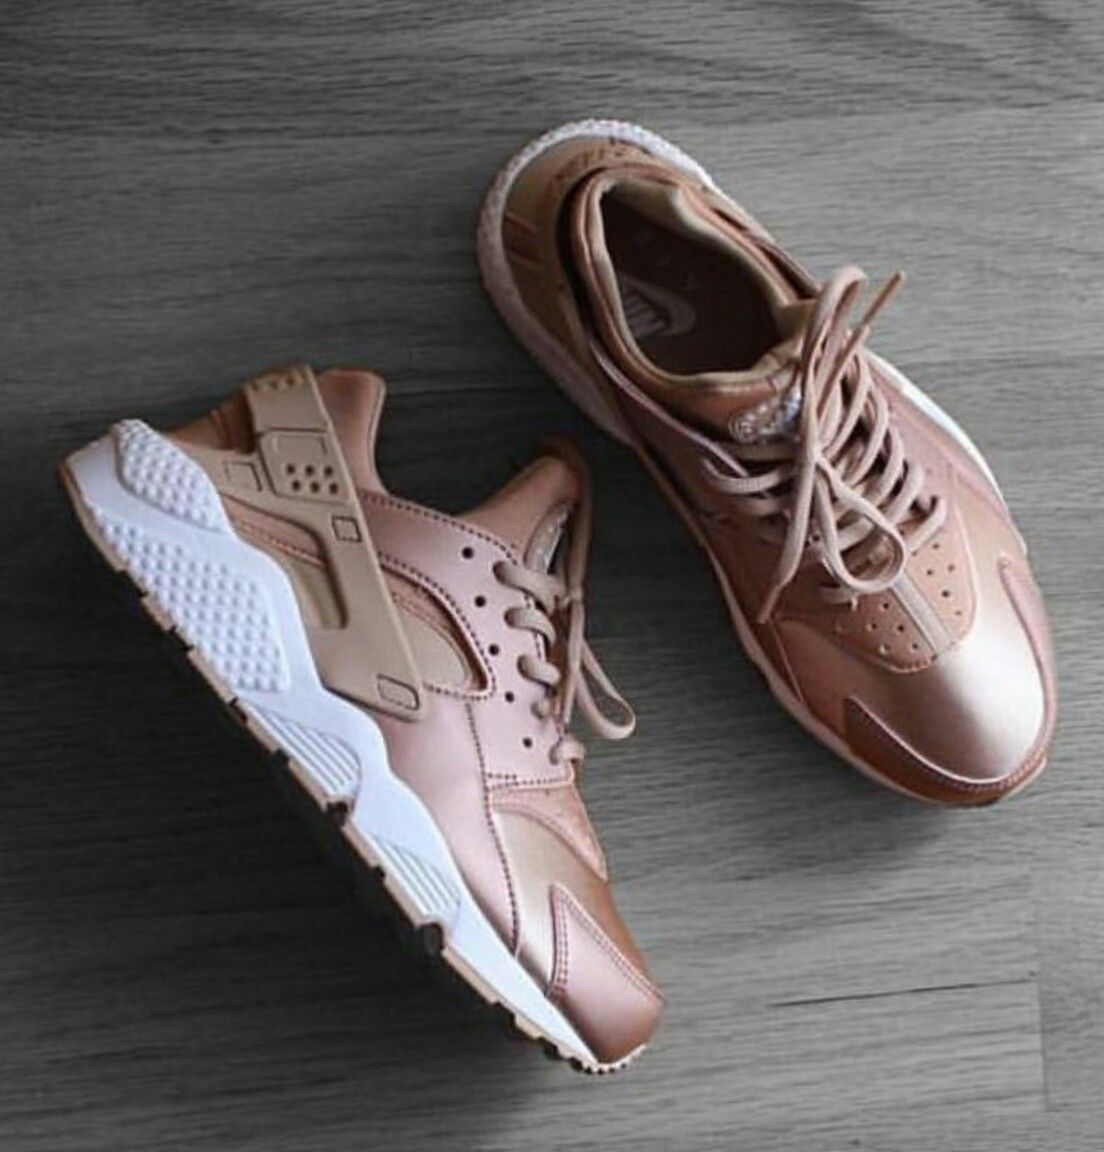 Nike Metallic Red Bronze Huaraches | Sneakers | Nike schuhe